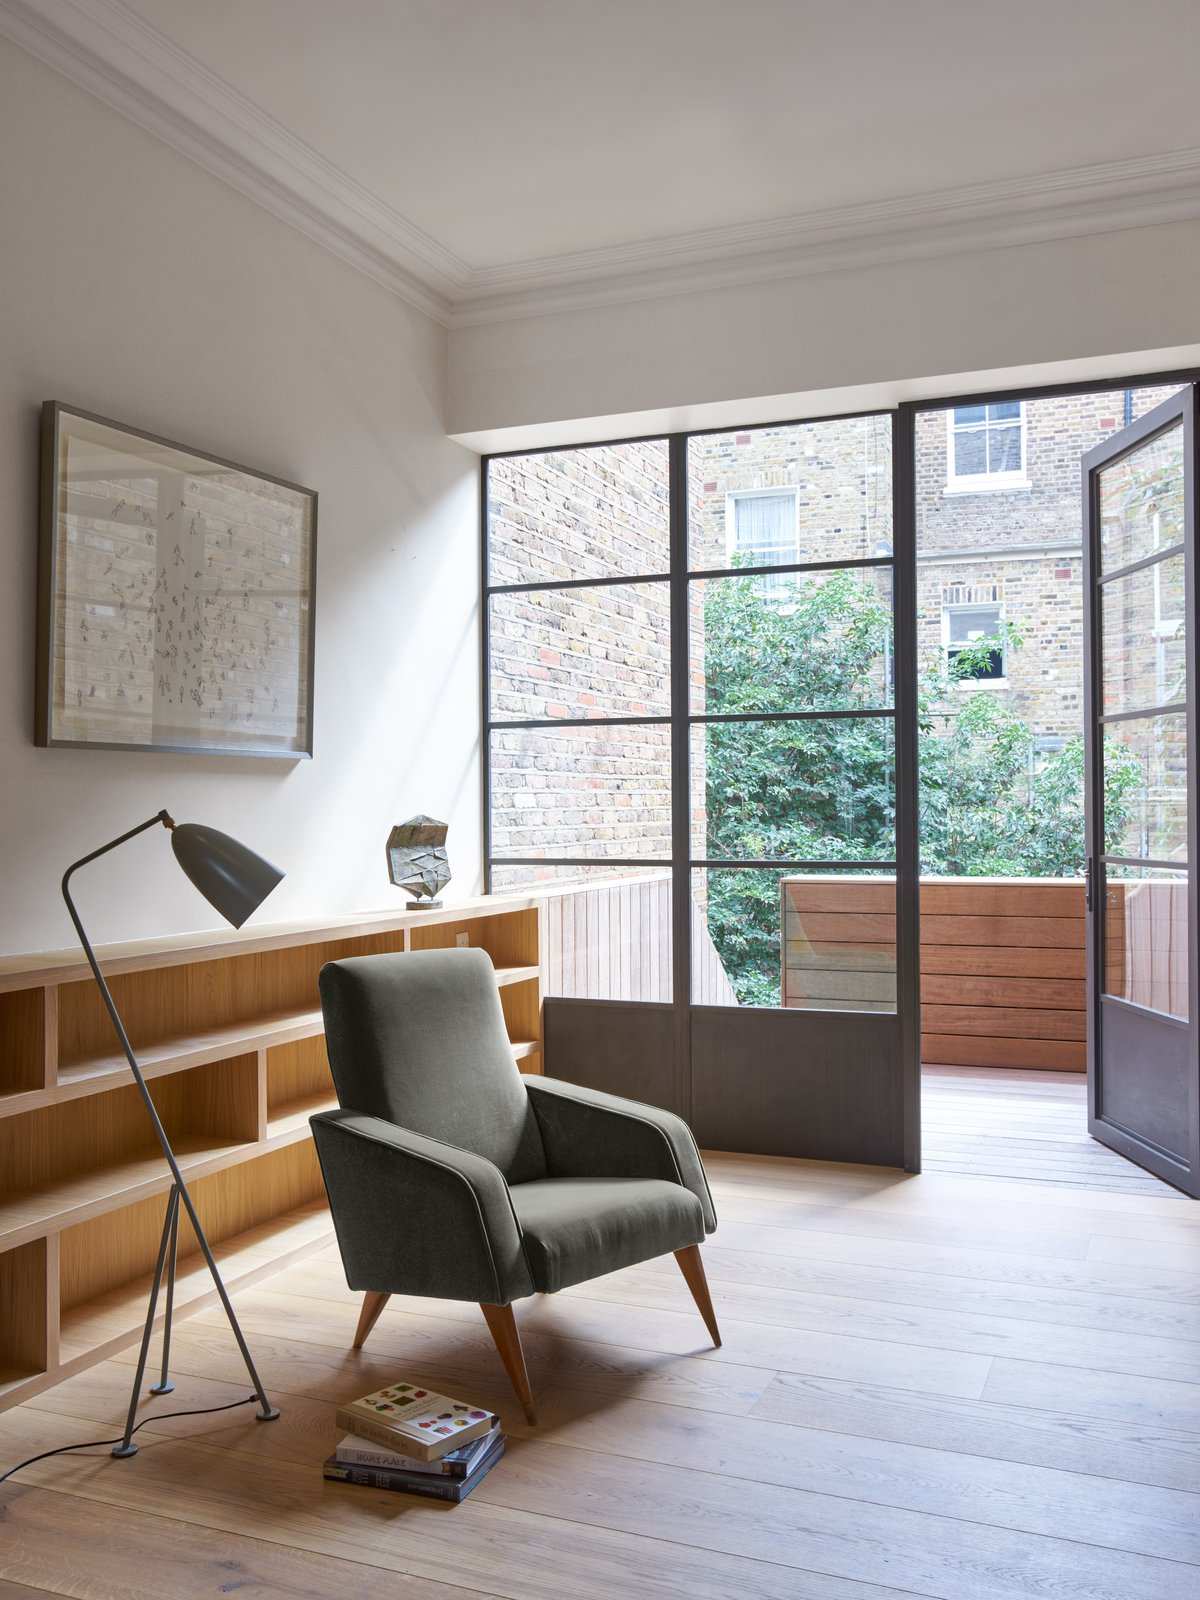 Tagged: Living Room, Chair, and Floor Lighting. A Once-Derelict London House Restored With Modern Elegance - Photo 2 of 10